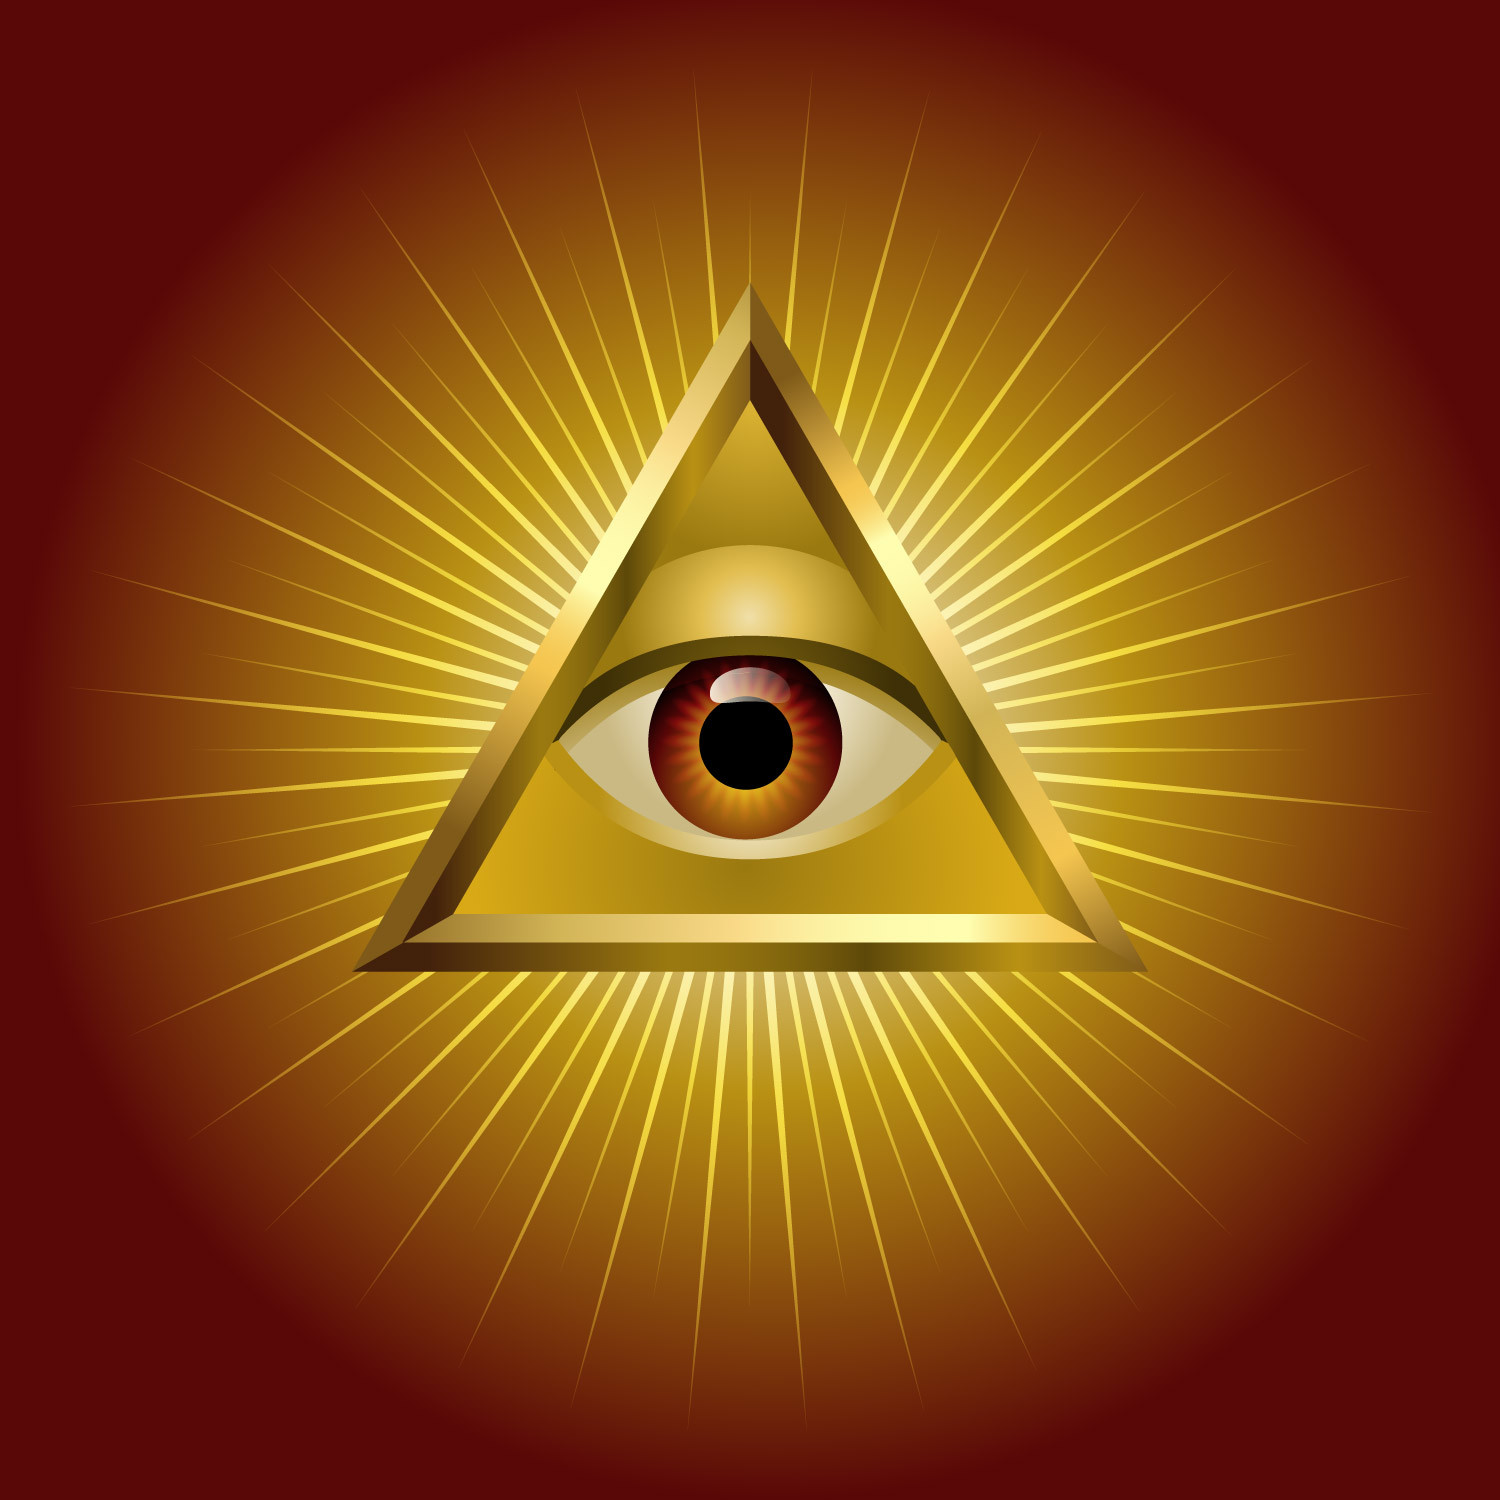 7 Theories About The Illuminati And The New World Order Insider